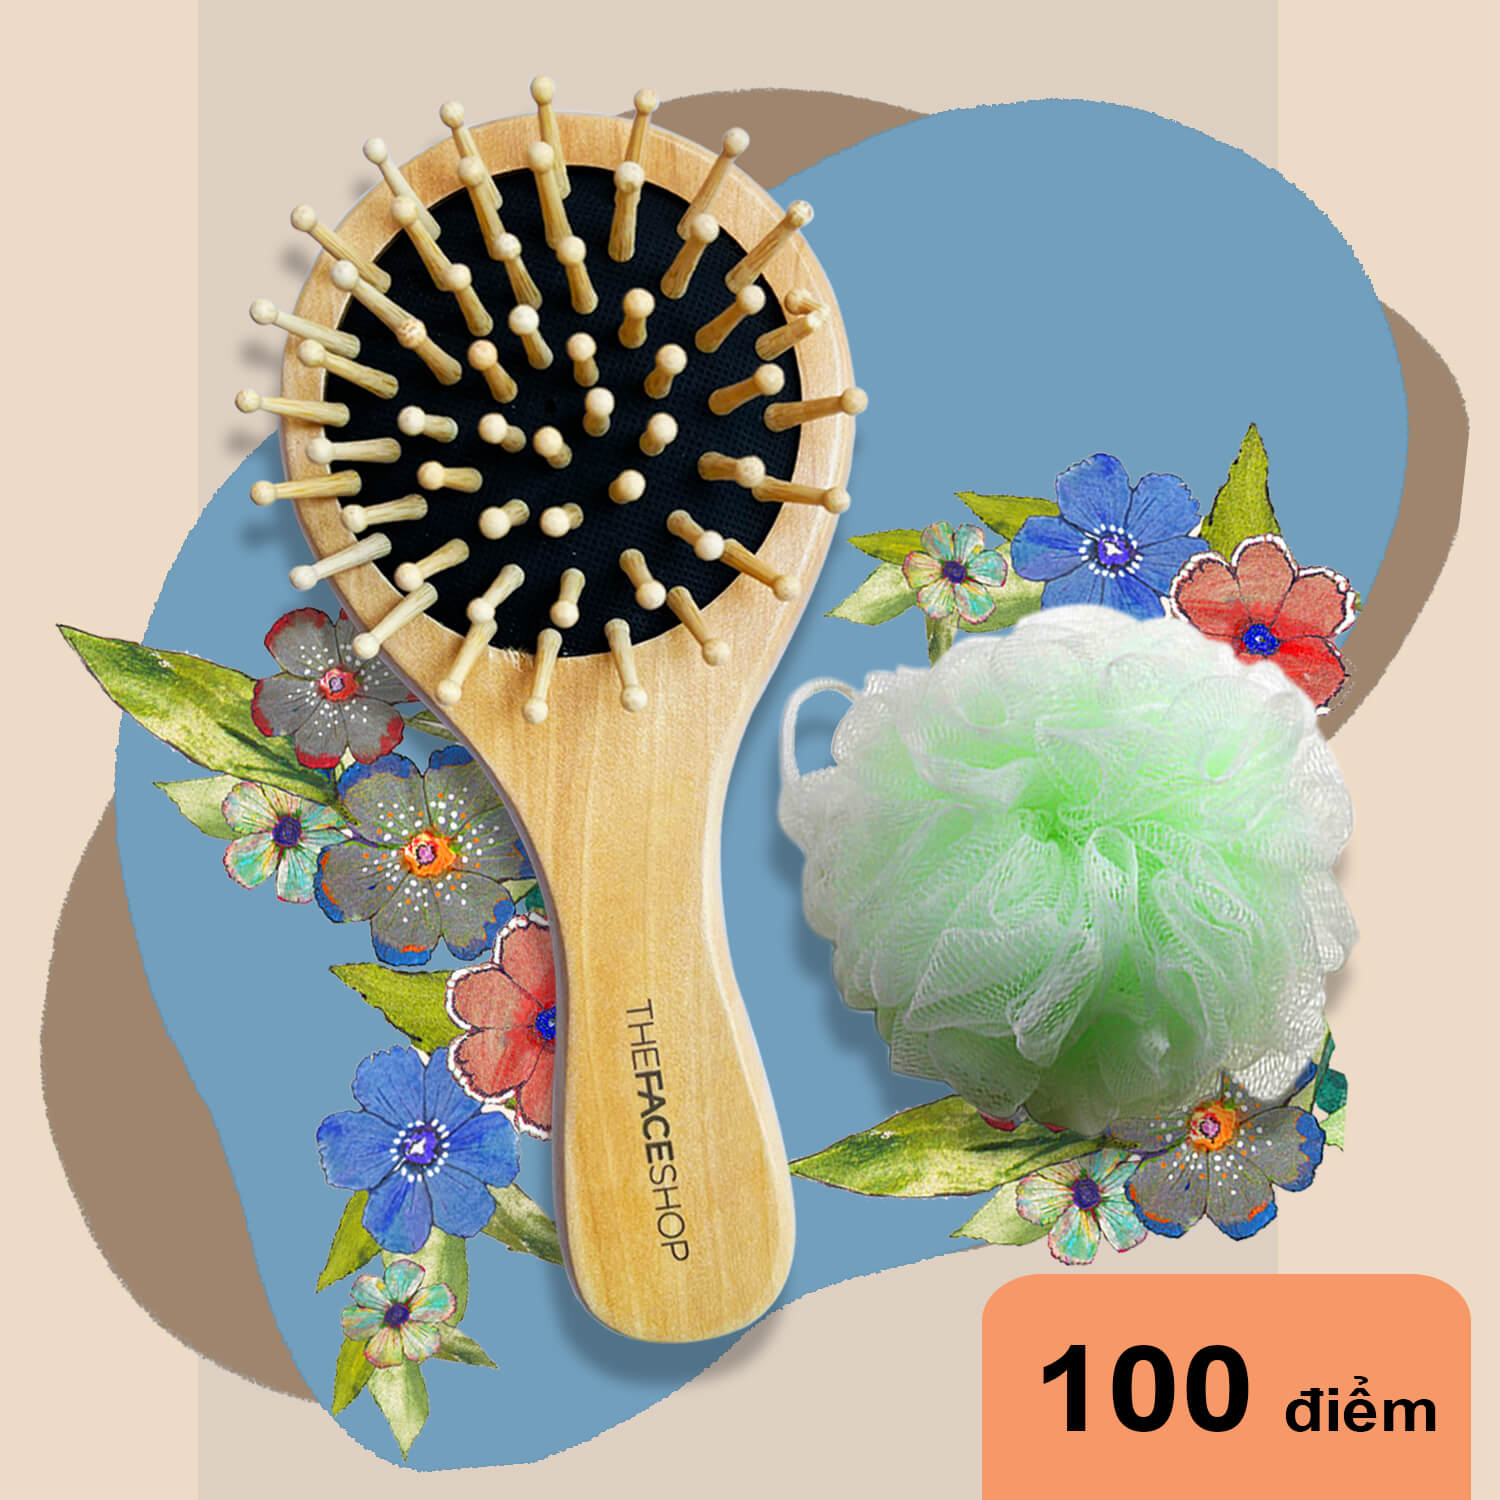 qua-tang-tich-diem-100-diem-01-luoc-chai-toc-01-bong-tam-tfs-hair-brush-shower-puff-qt03